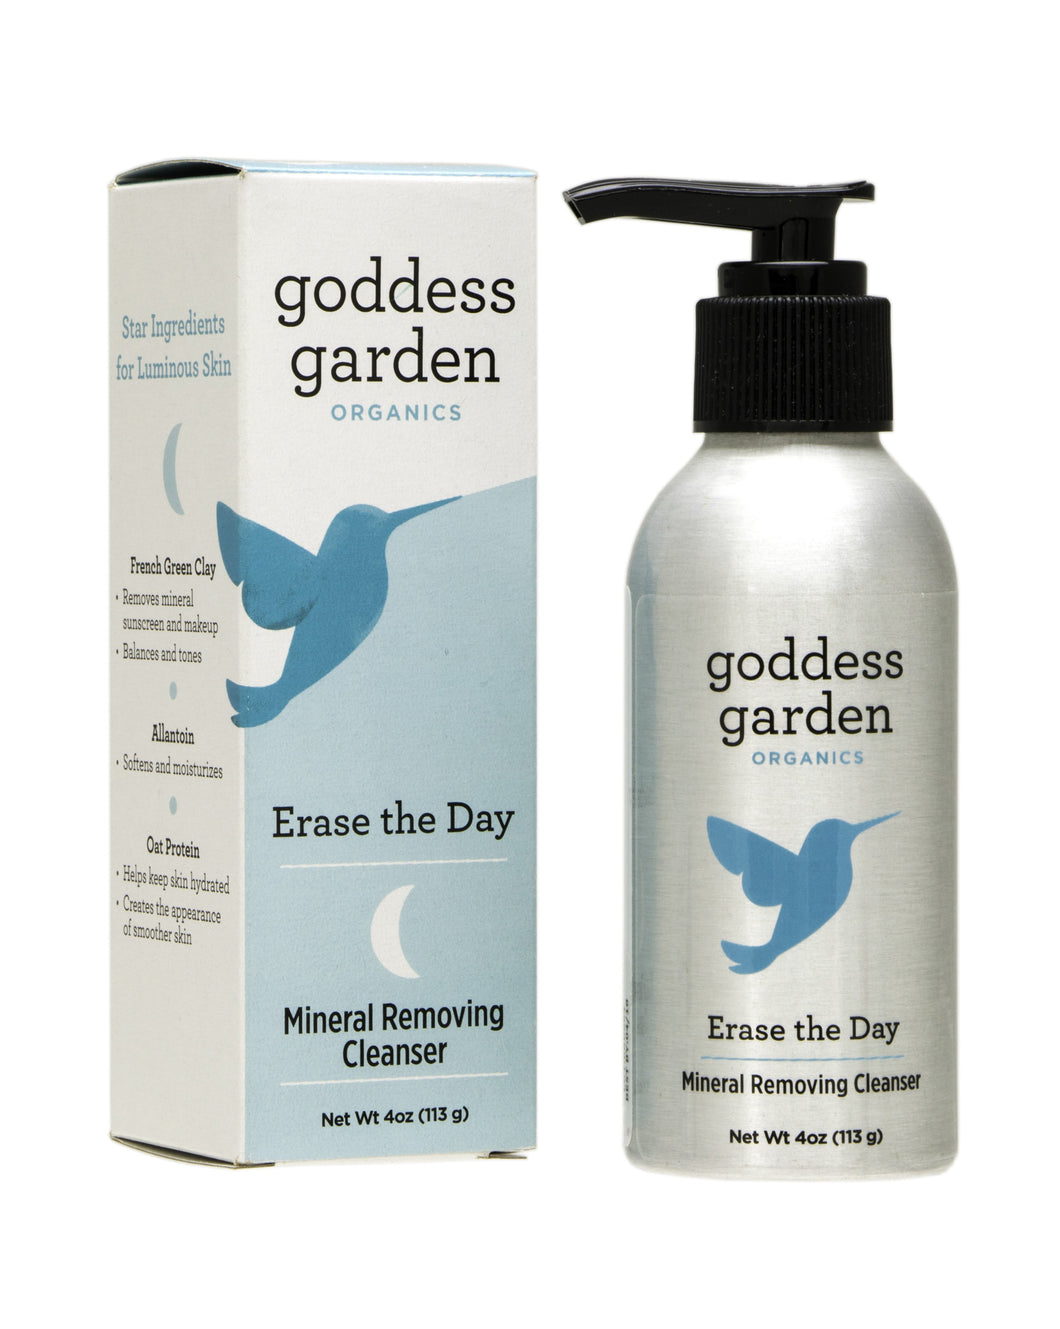 Goddess Garden Erase The Day Mineral Removing Cleanser, 4 Oz